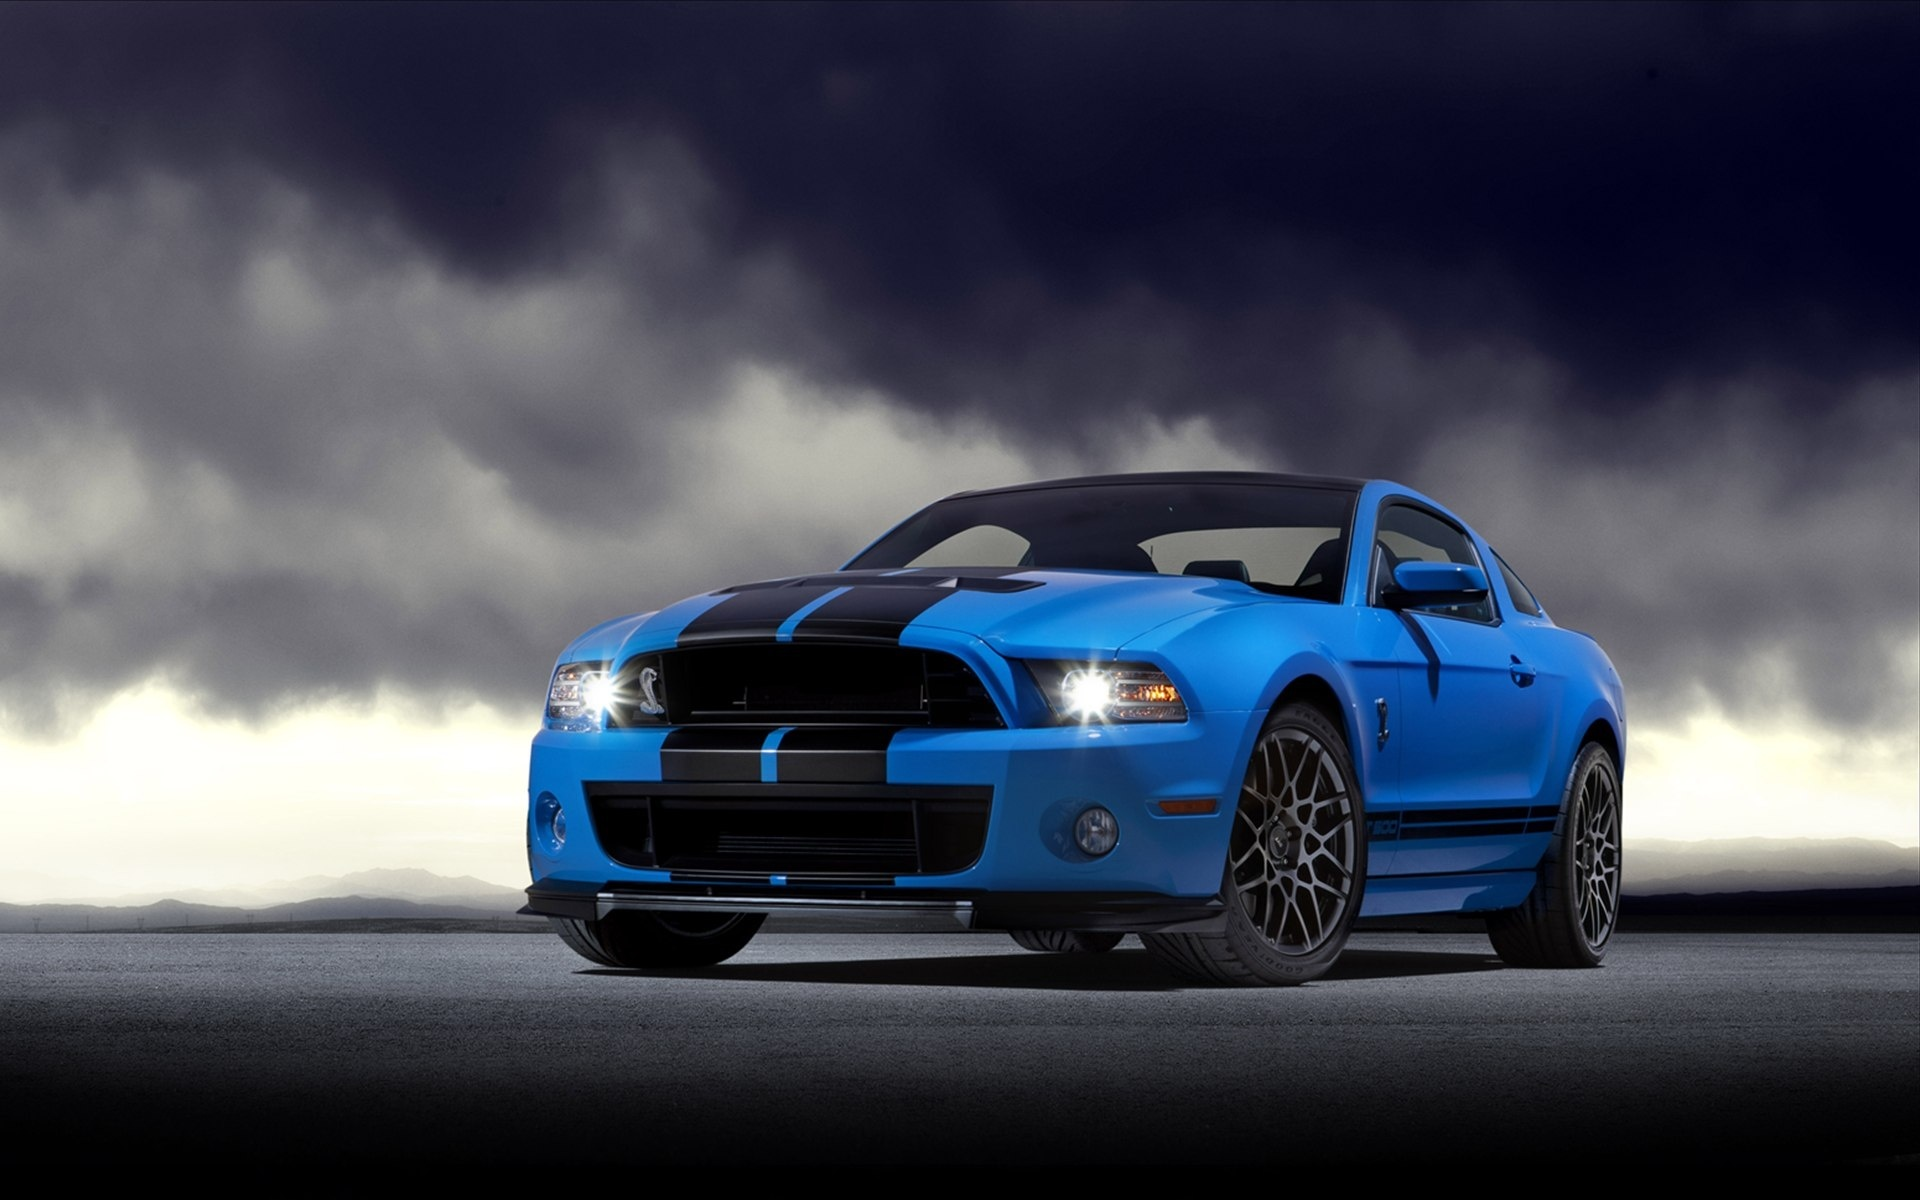 Shelby Cobra Mustang Wallpaper Ford Shelby Gt500 286394